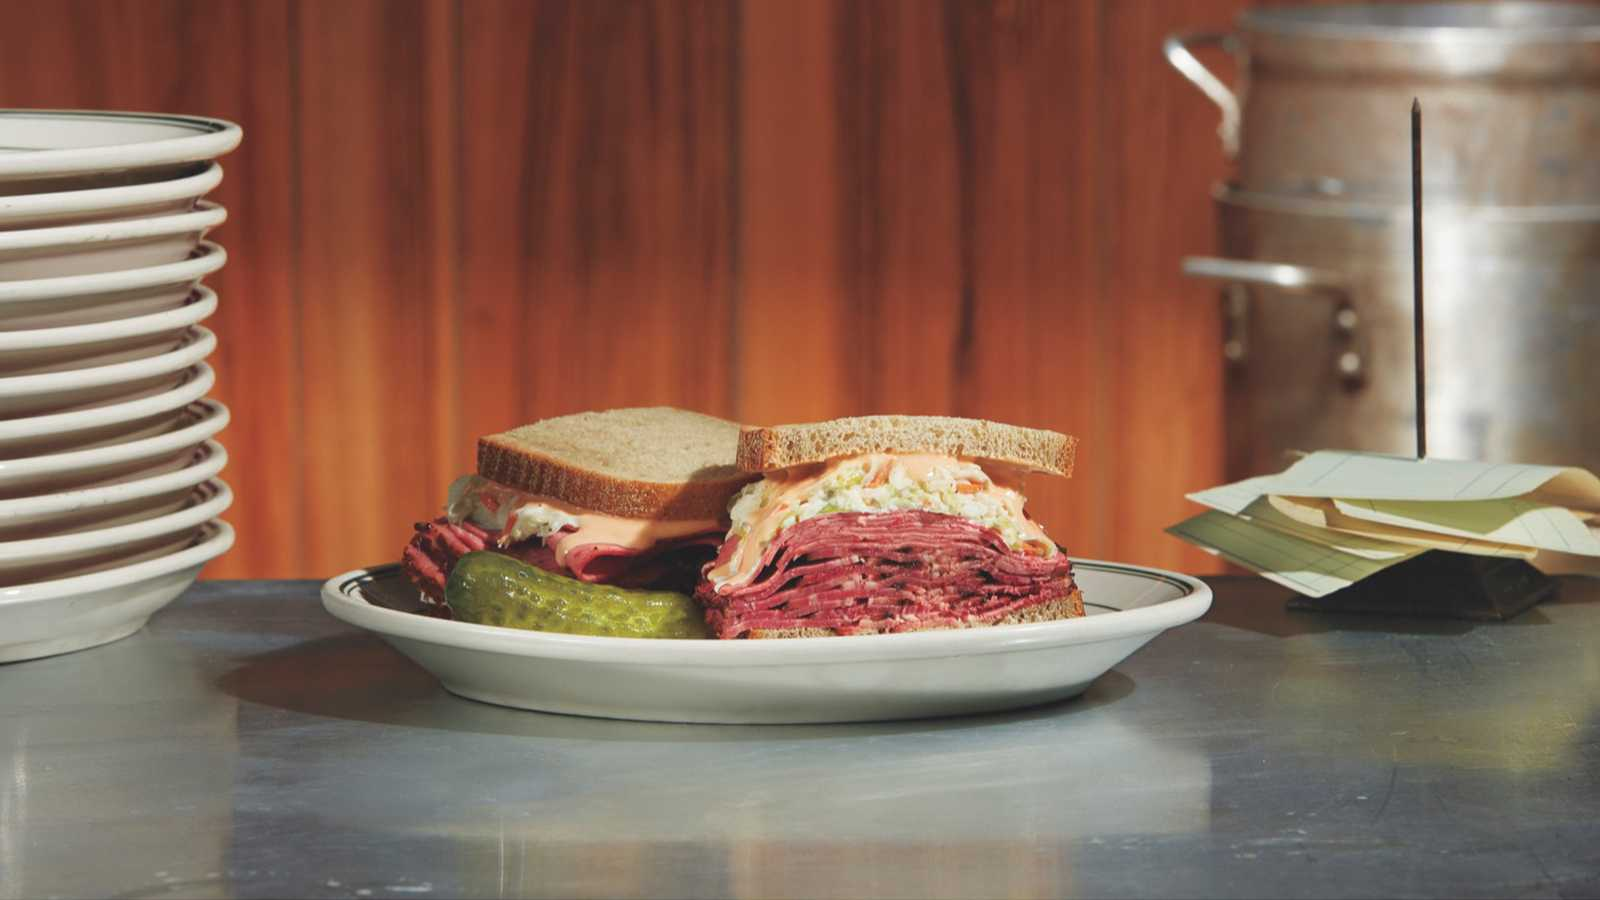 Jewish Delis Are Serving Up a 'Marvelous Mrs. Maisel' Inspired Pastrami Sandwich